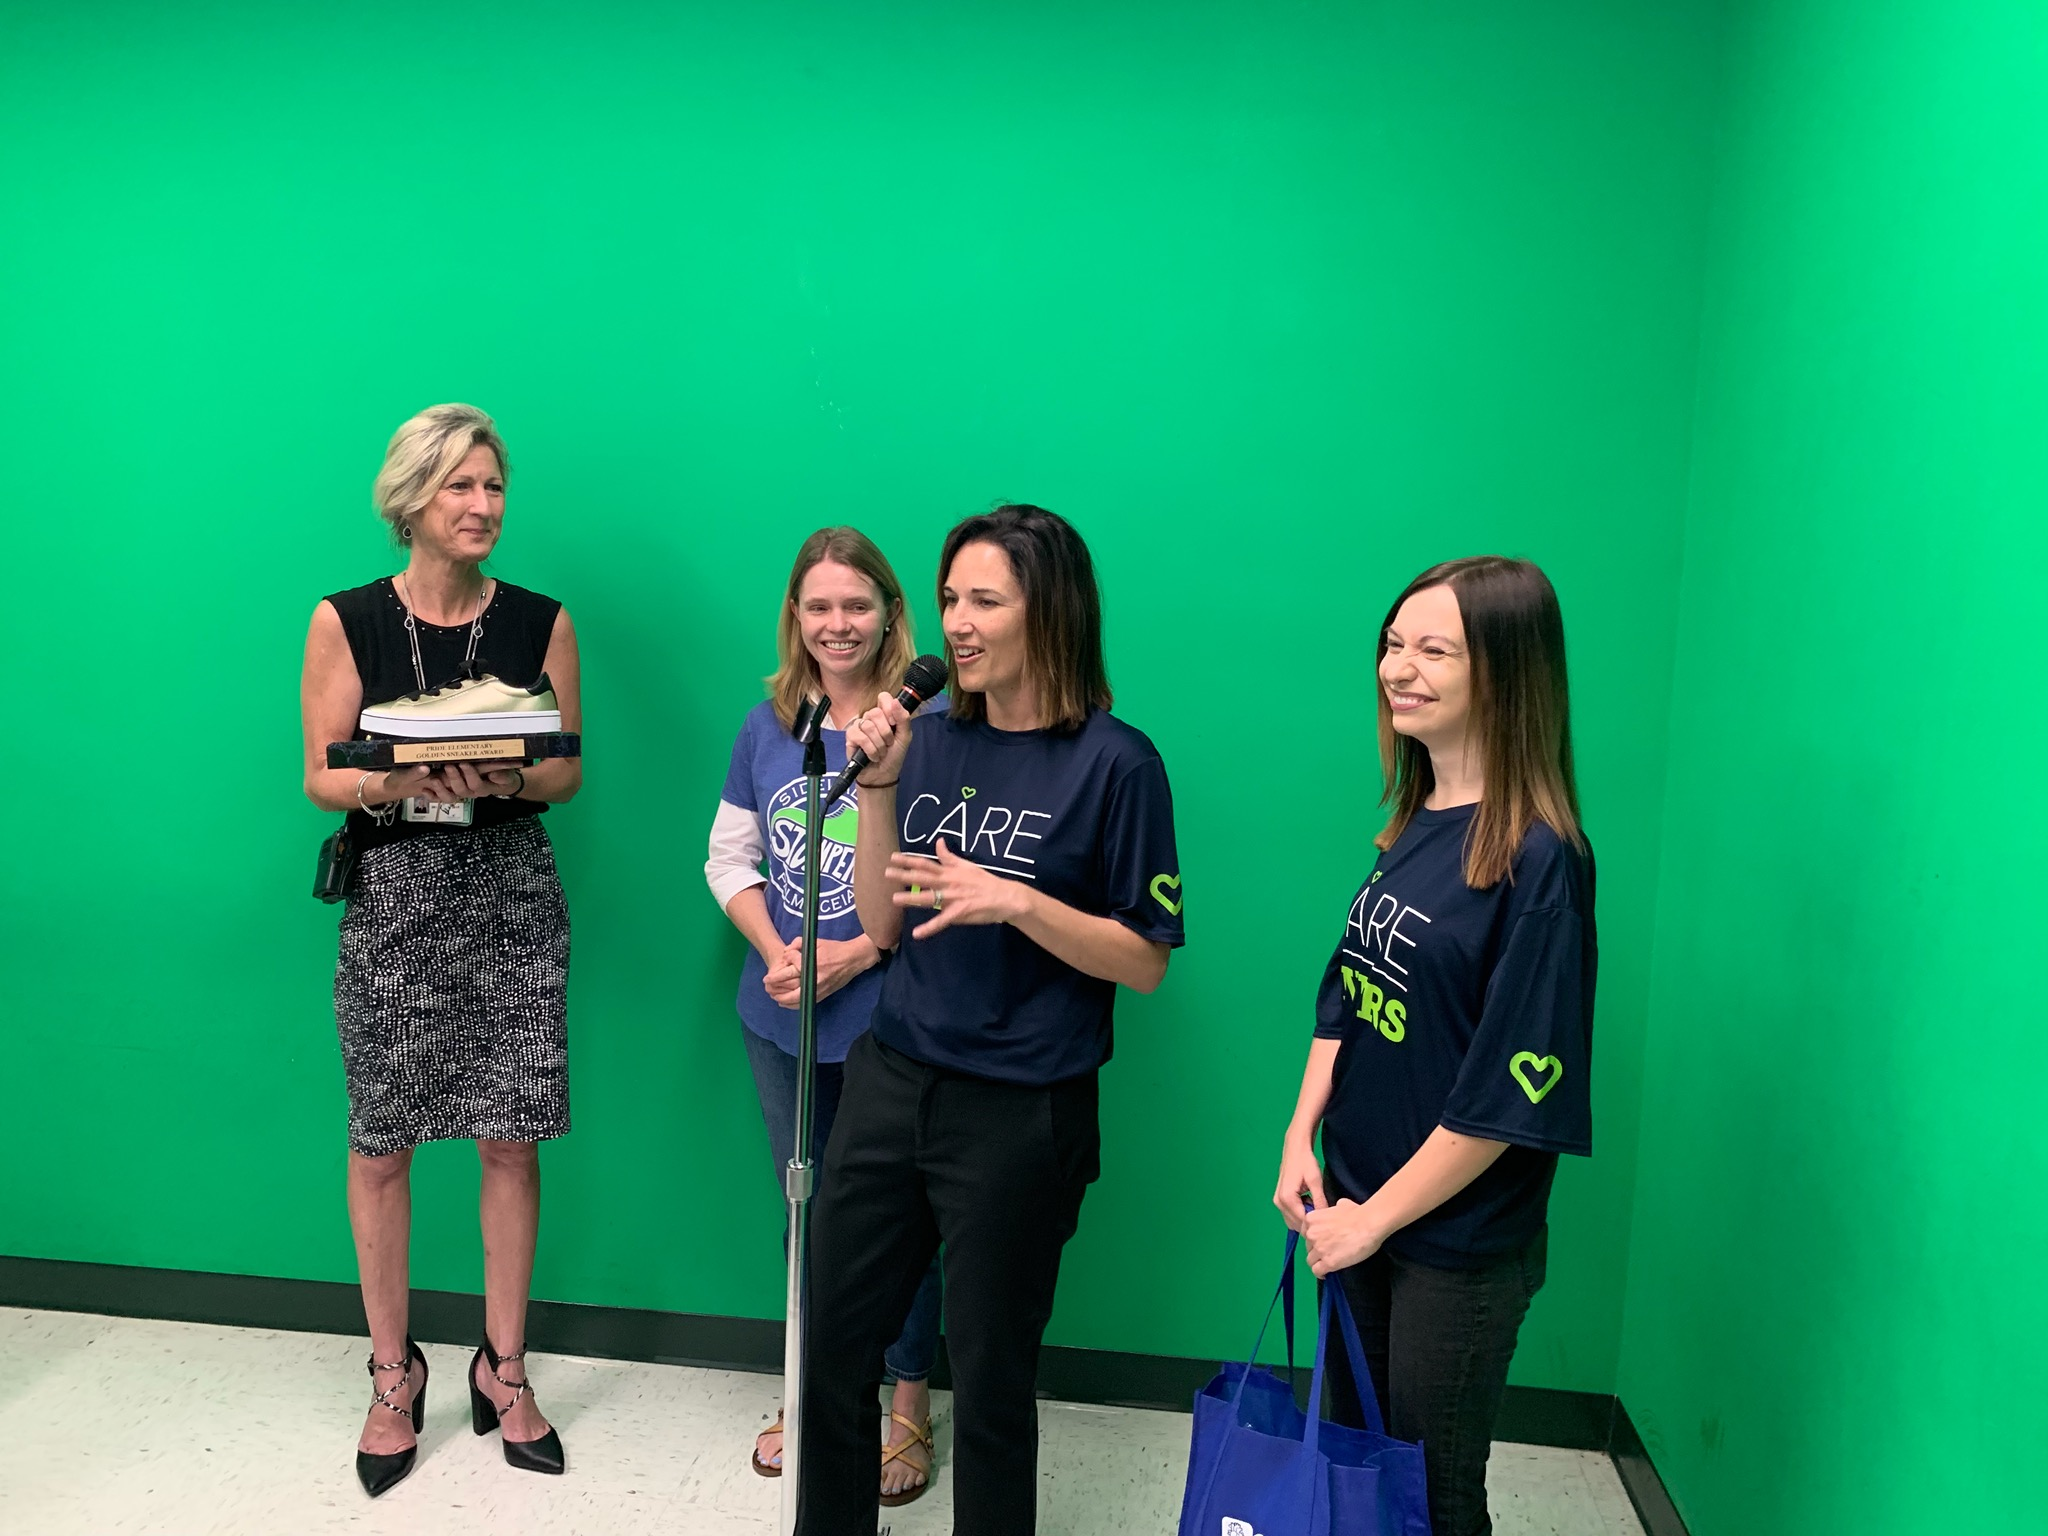 Principal Zilbar, Sidewalk Stompers president Emily Hinsdale, and AdventHealth Tampa's Jen Bradley and Roxanne Carlucci announcing their partnership on the Pride morning show in March.